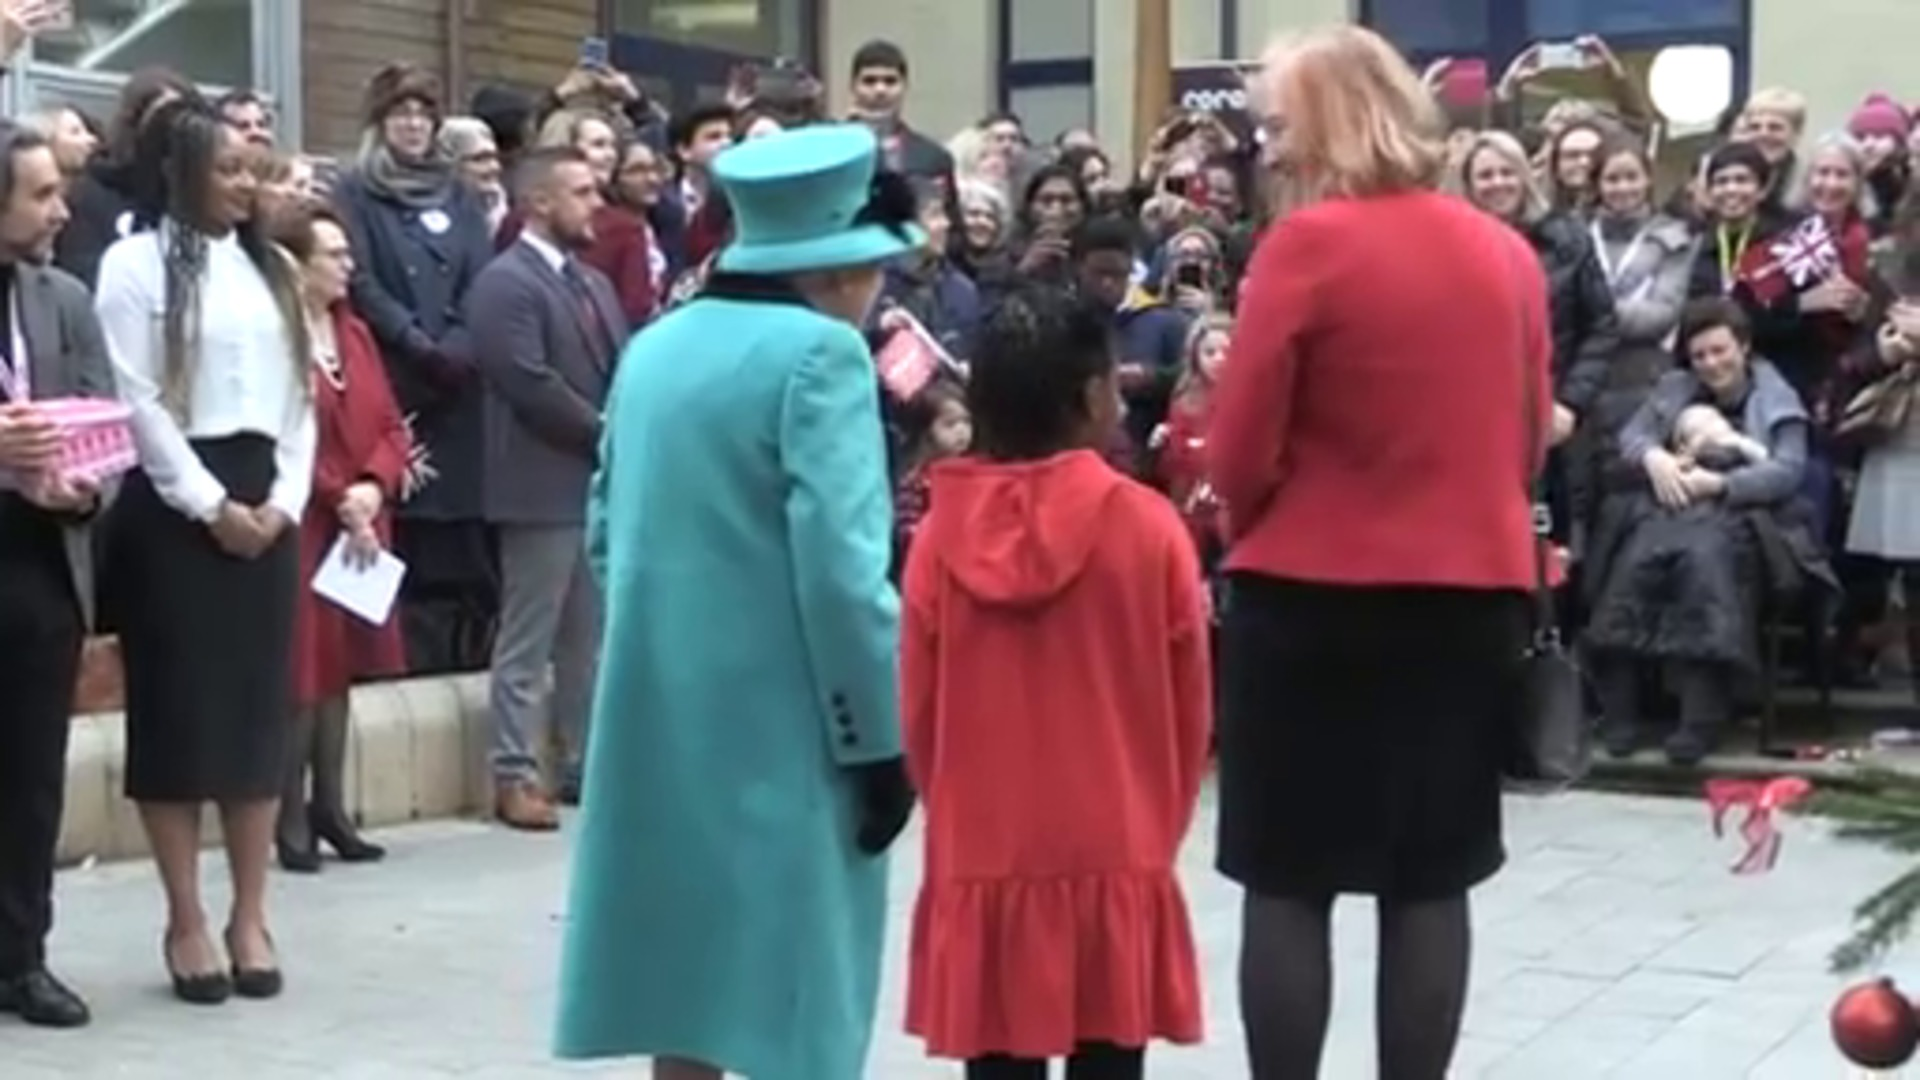 WATCH: The Queen helps little girl decorate Christmas tree